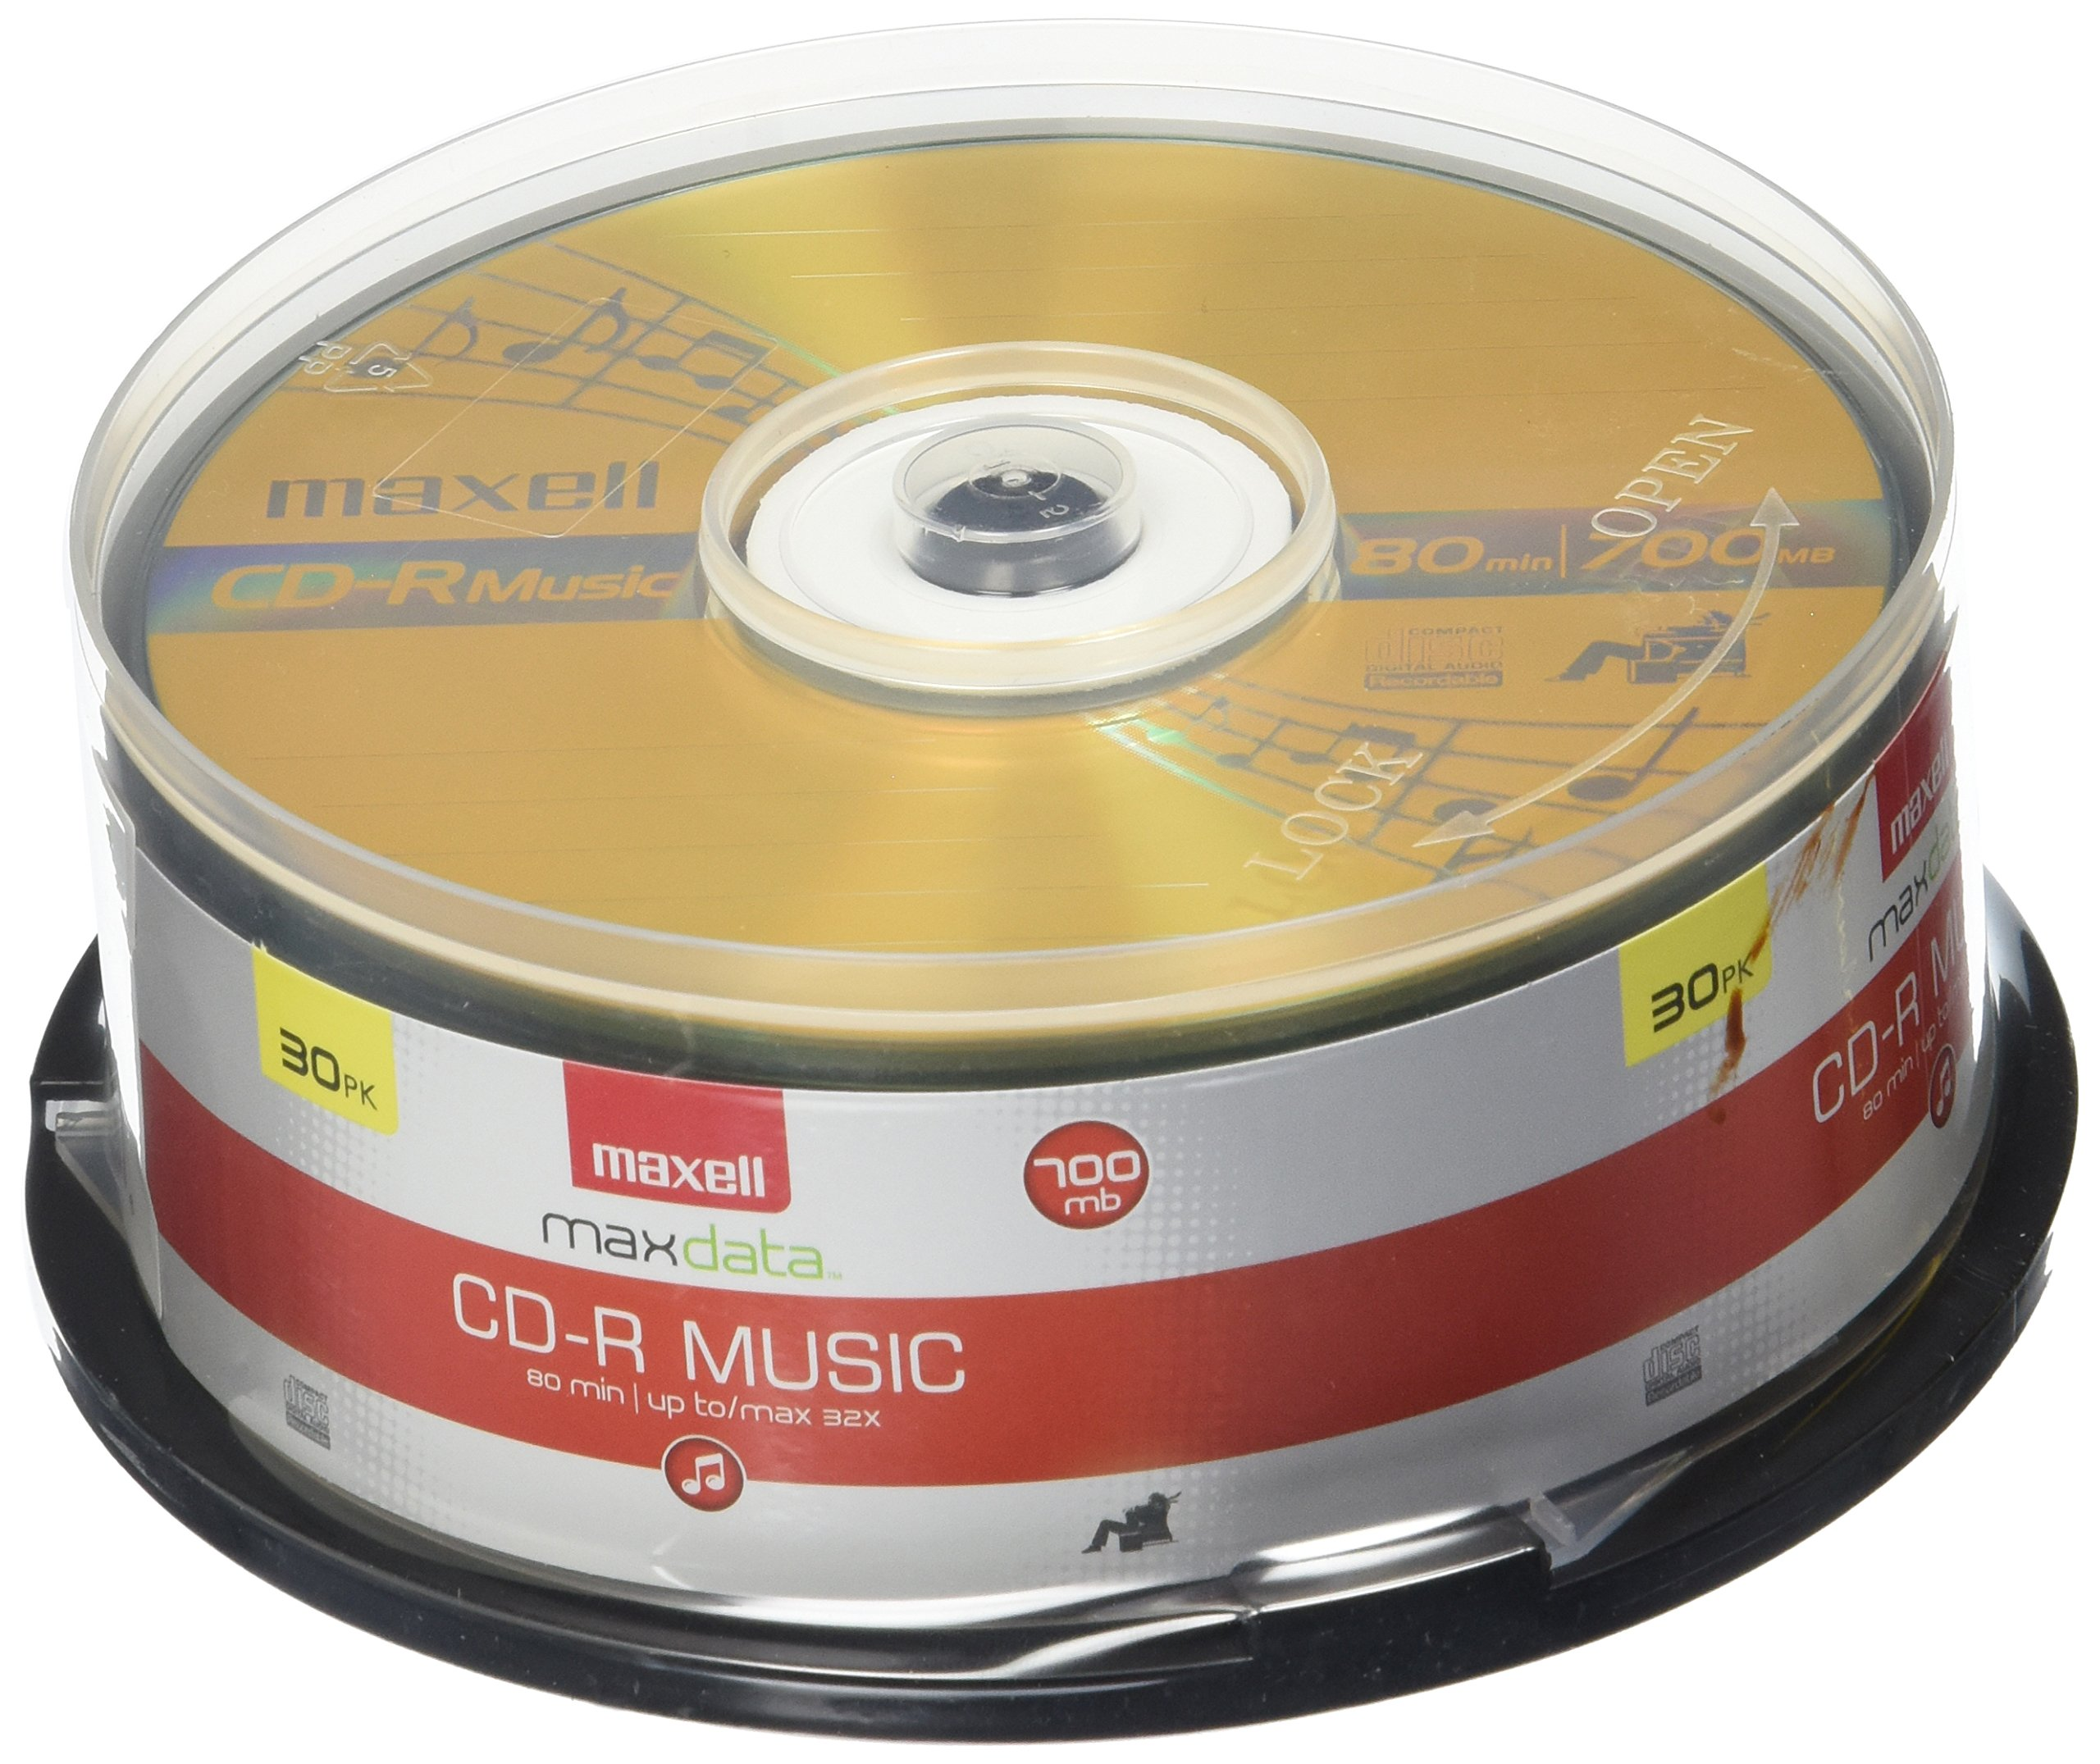 Maxell CD-R CD-R Discs Music Spindle 625156 50-pack Audio only Blank Media